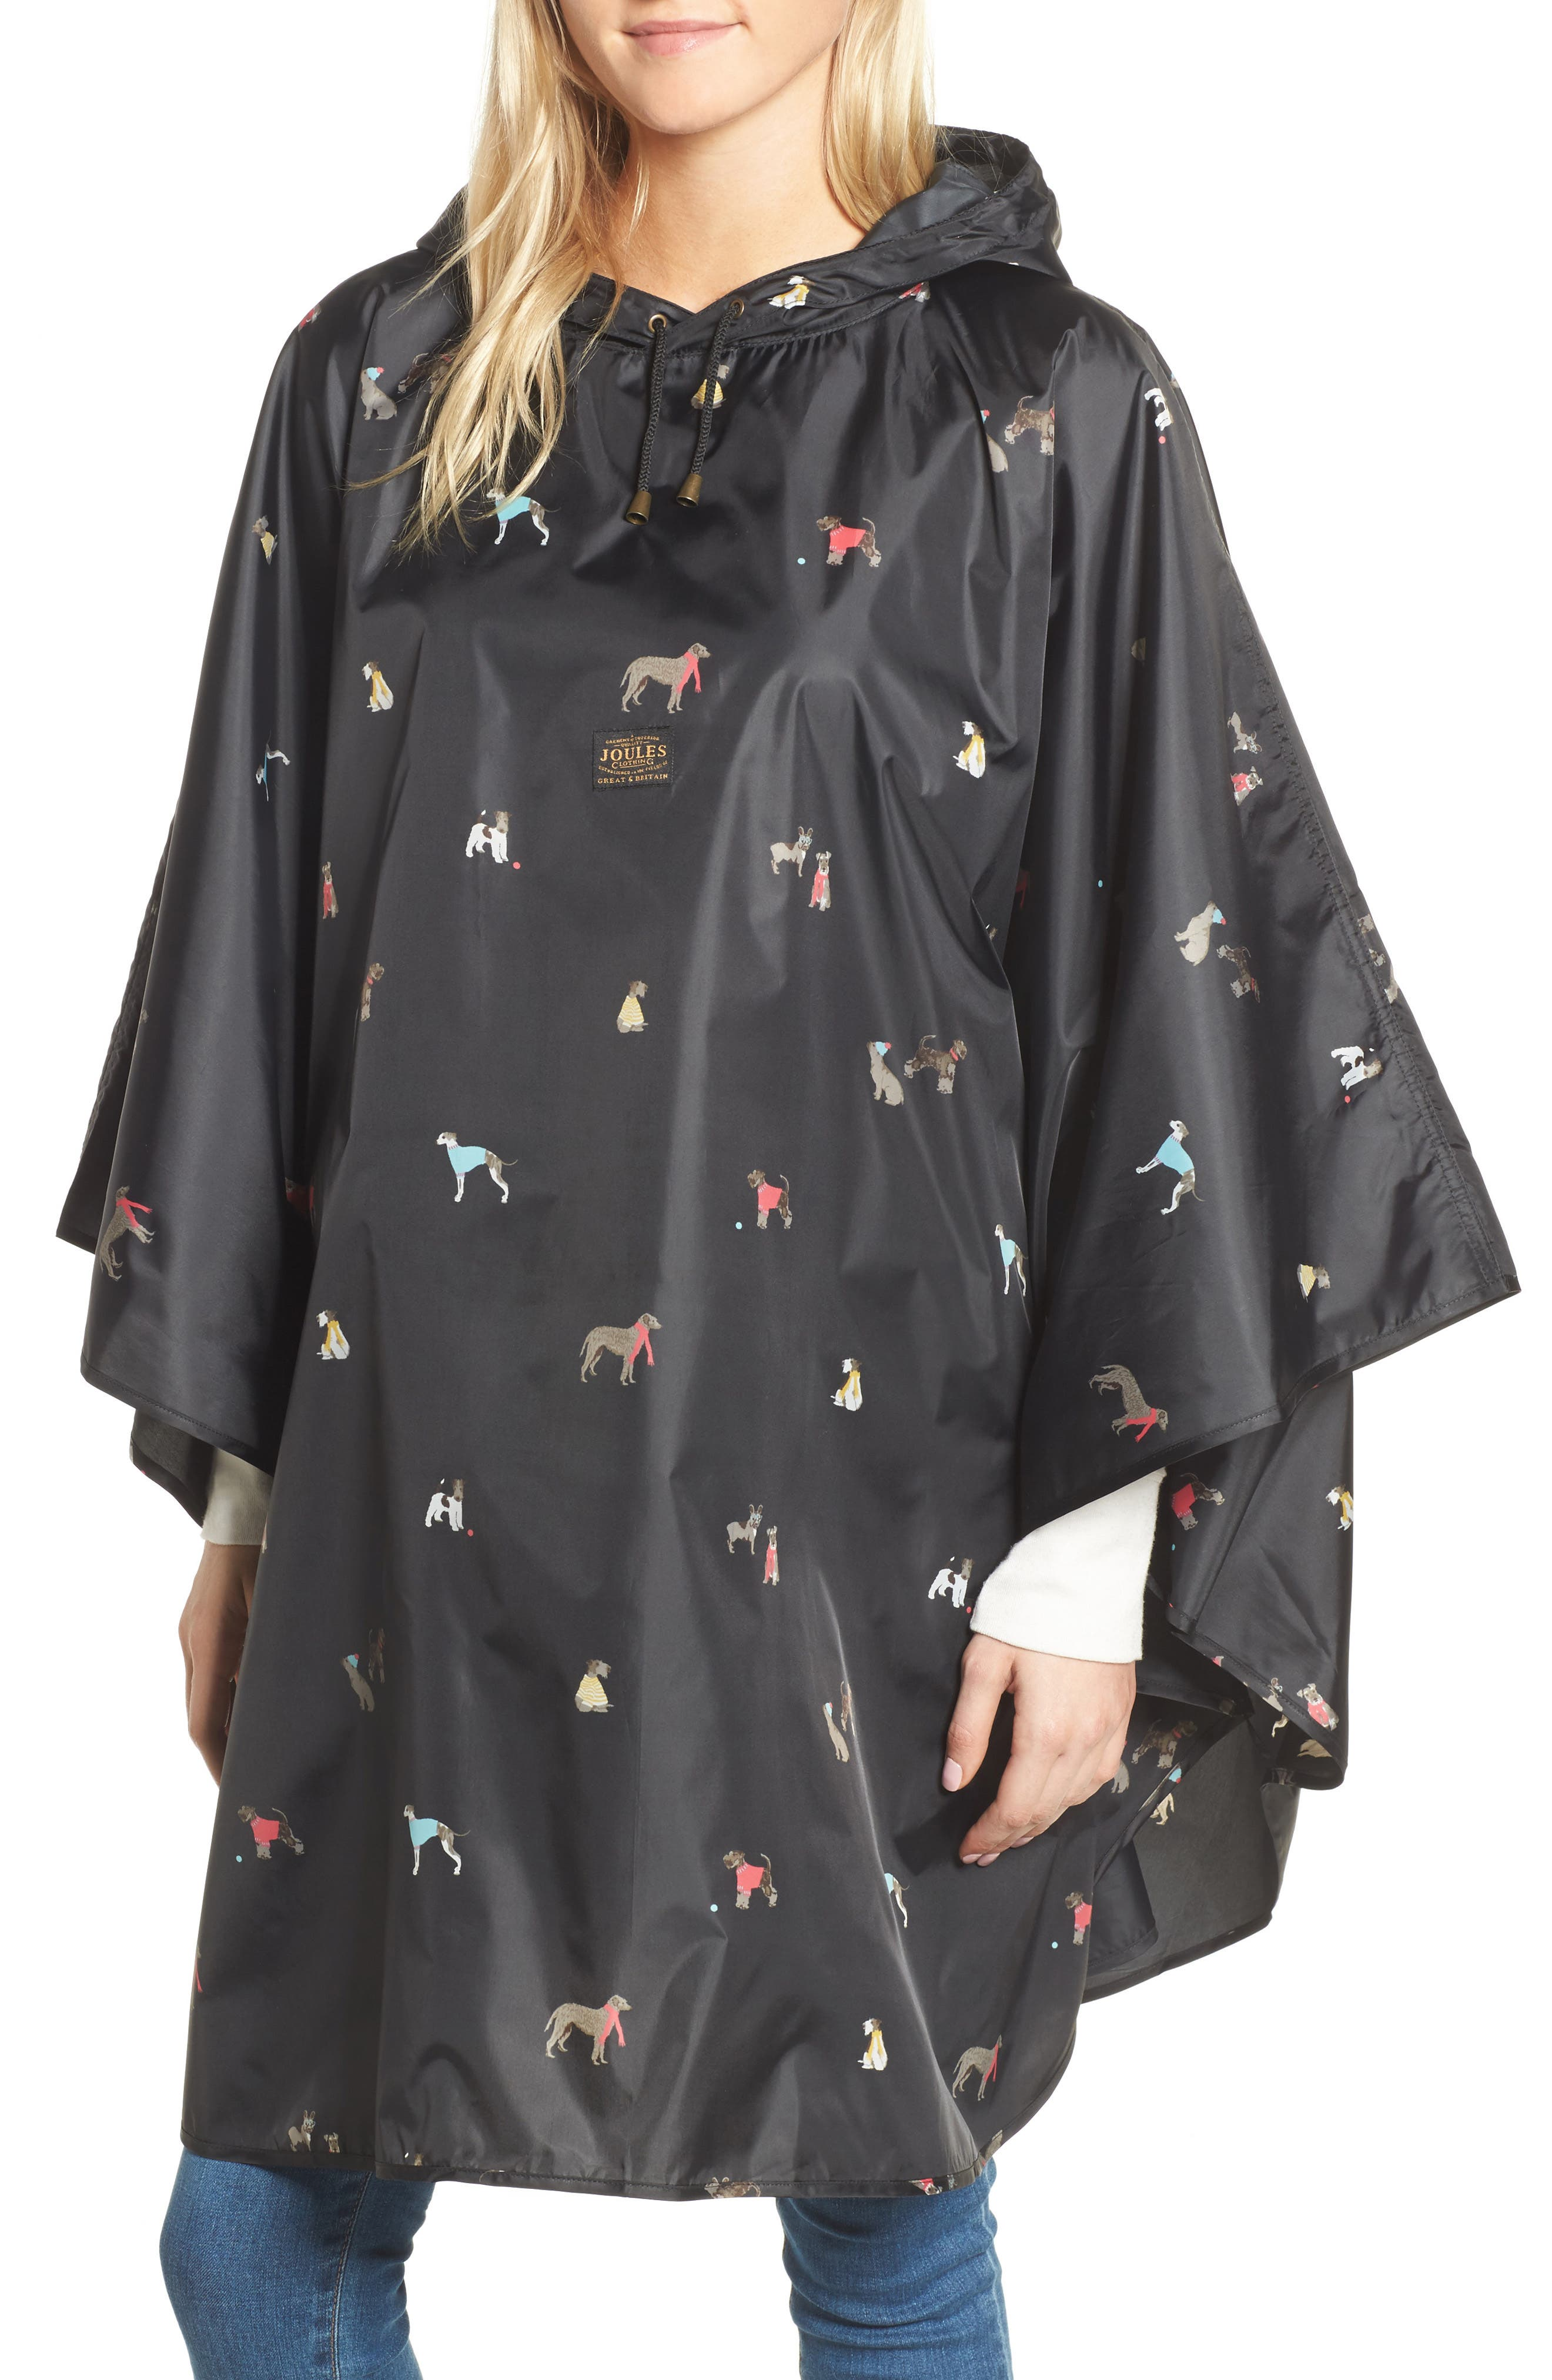 Main Image - Joules Right as Rain Print Packable Hooded Poncho